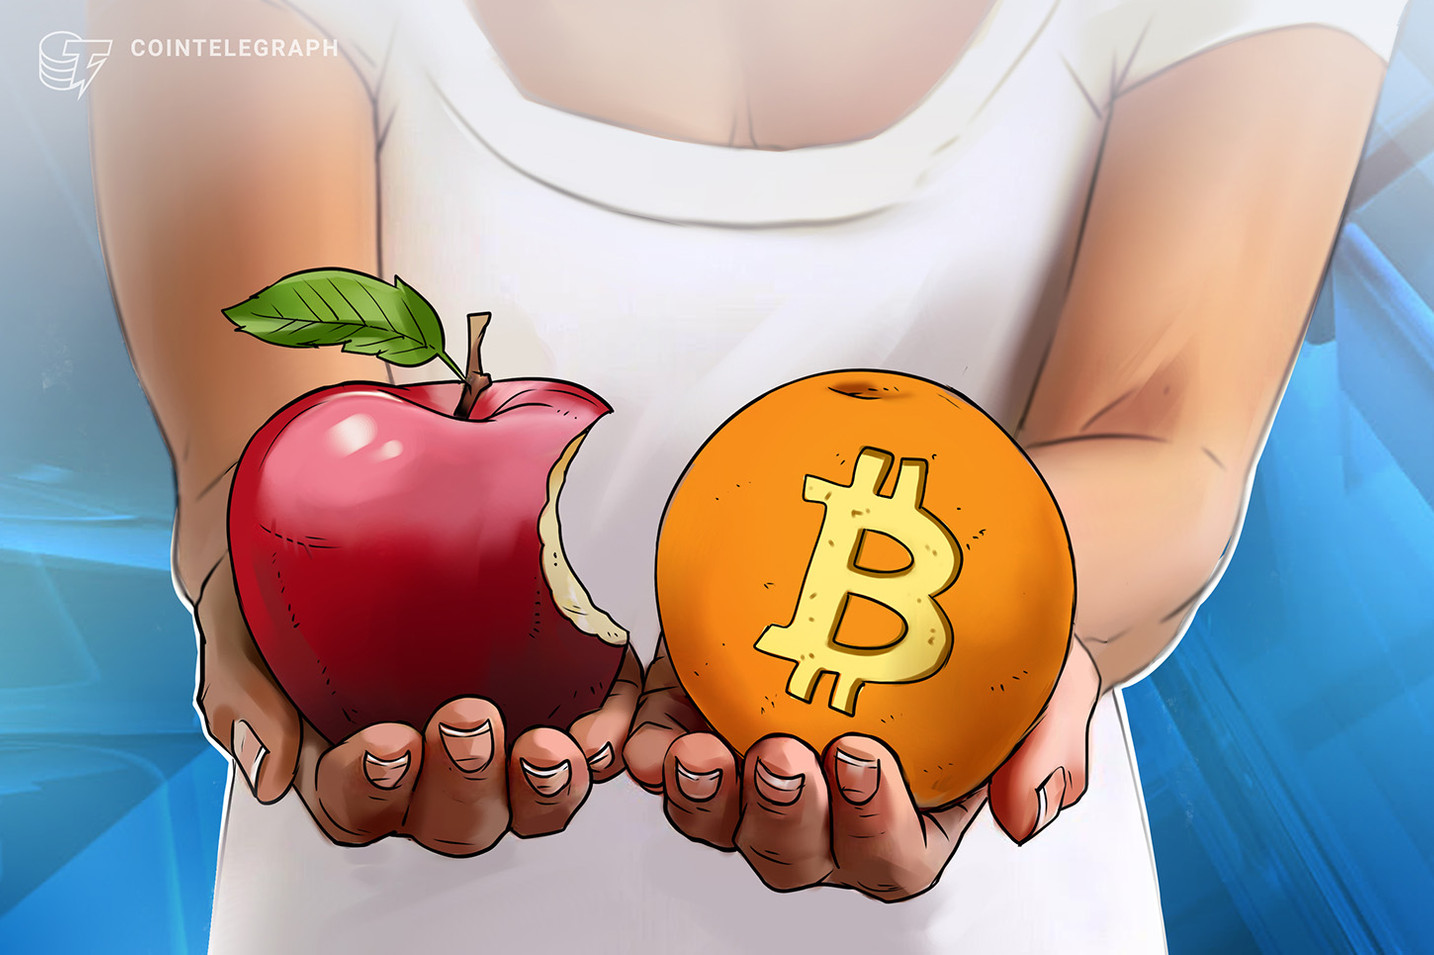 Comparing Apple to Bitcoin? Crypto Occupies a Class of Its Own